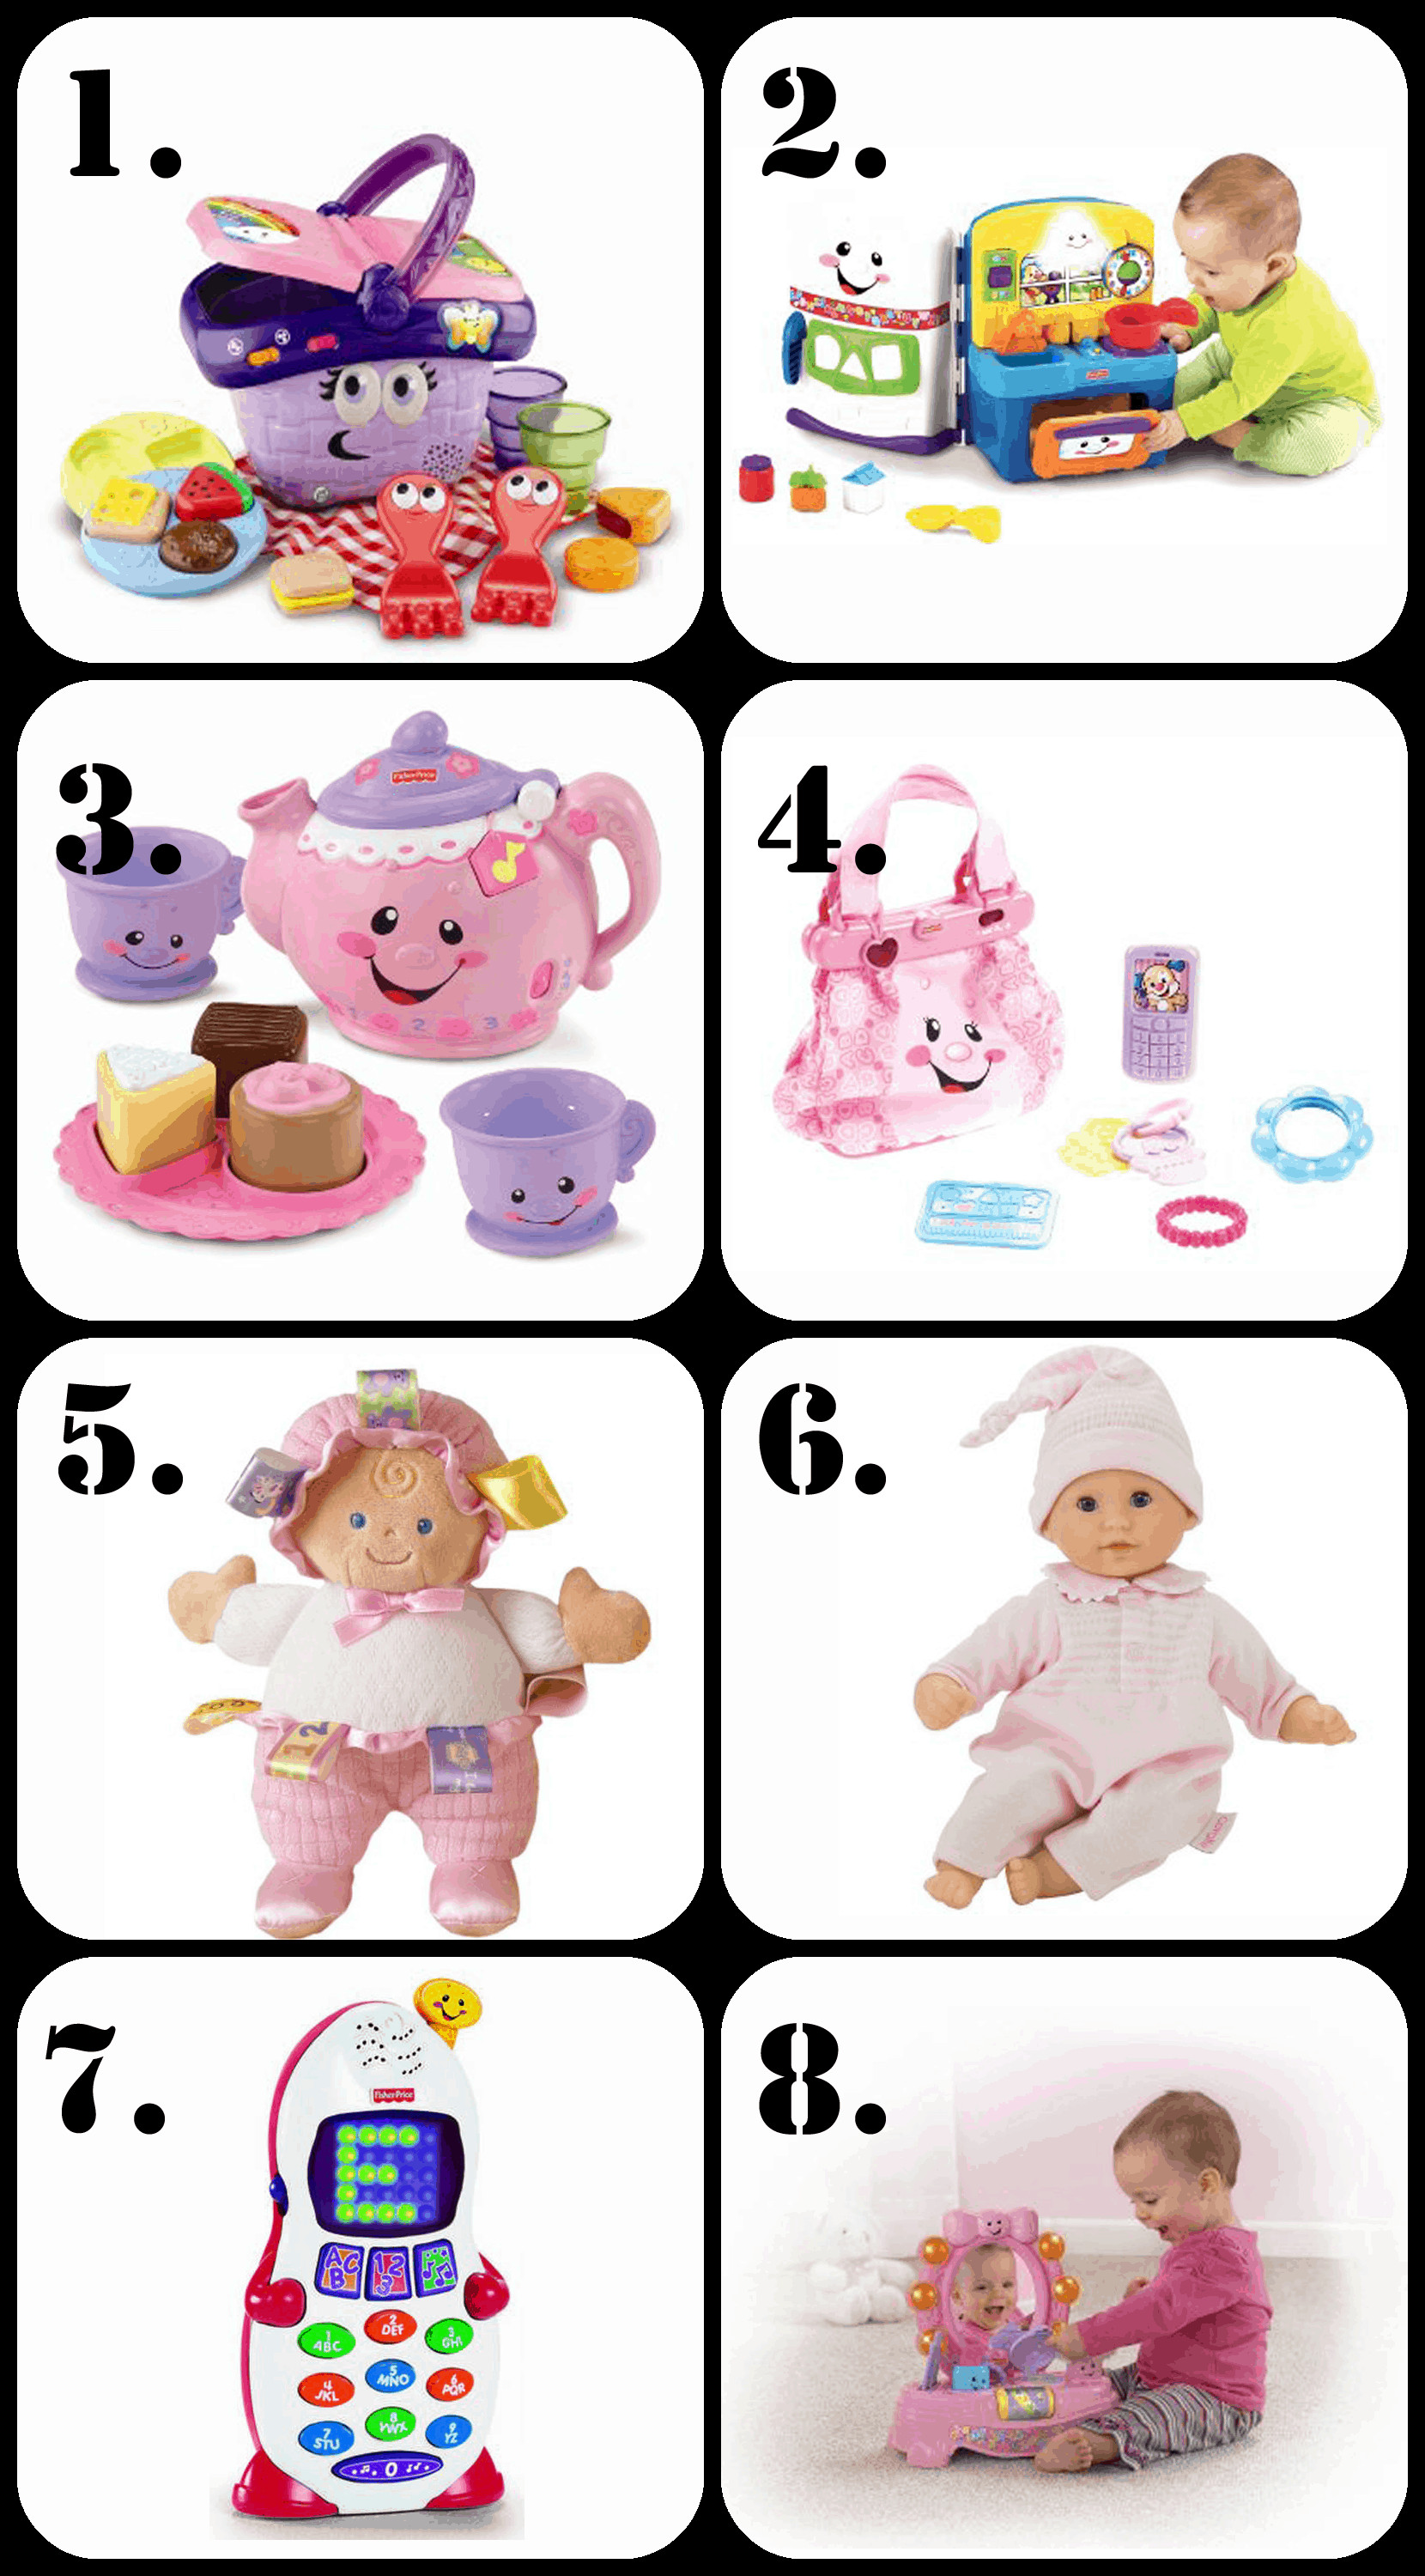 Gift Ideas For Two Year Old Baby Girl  BEST Gifts for a 1 Year Old Girl • The Pinning Mama